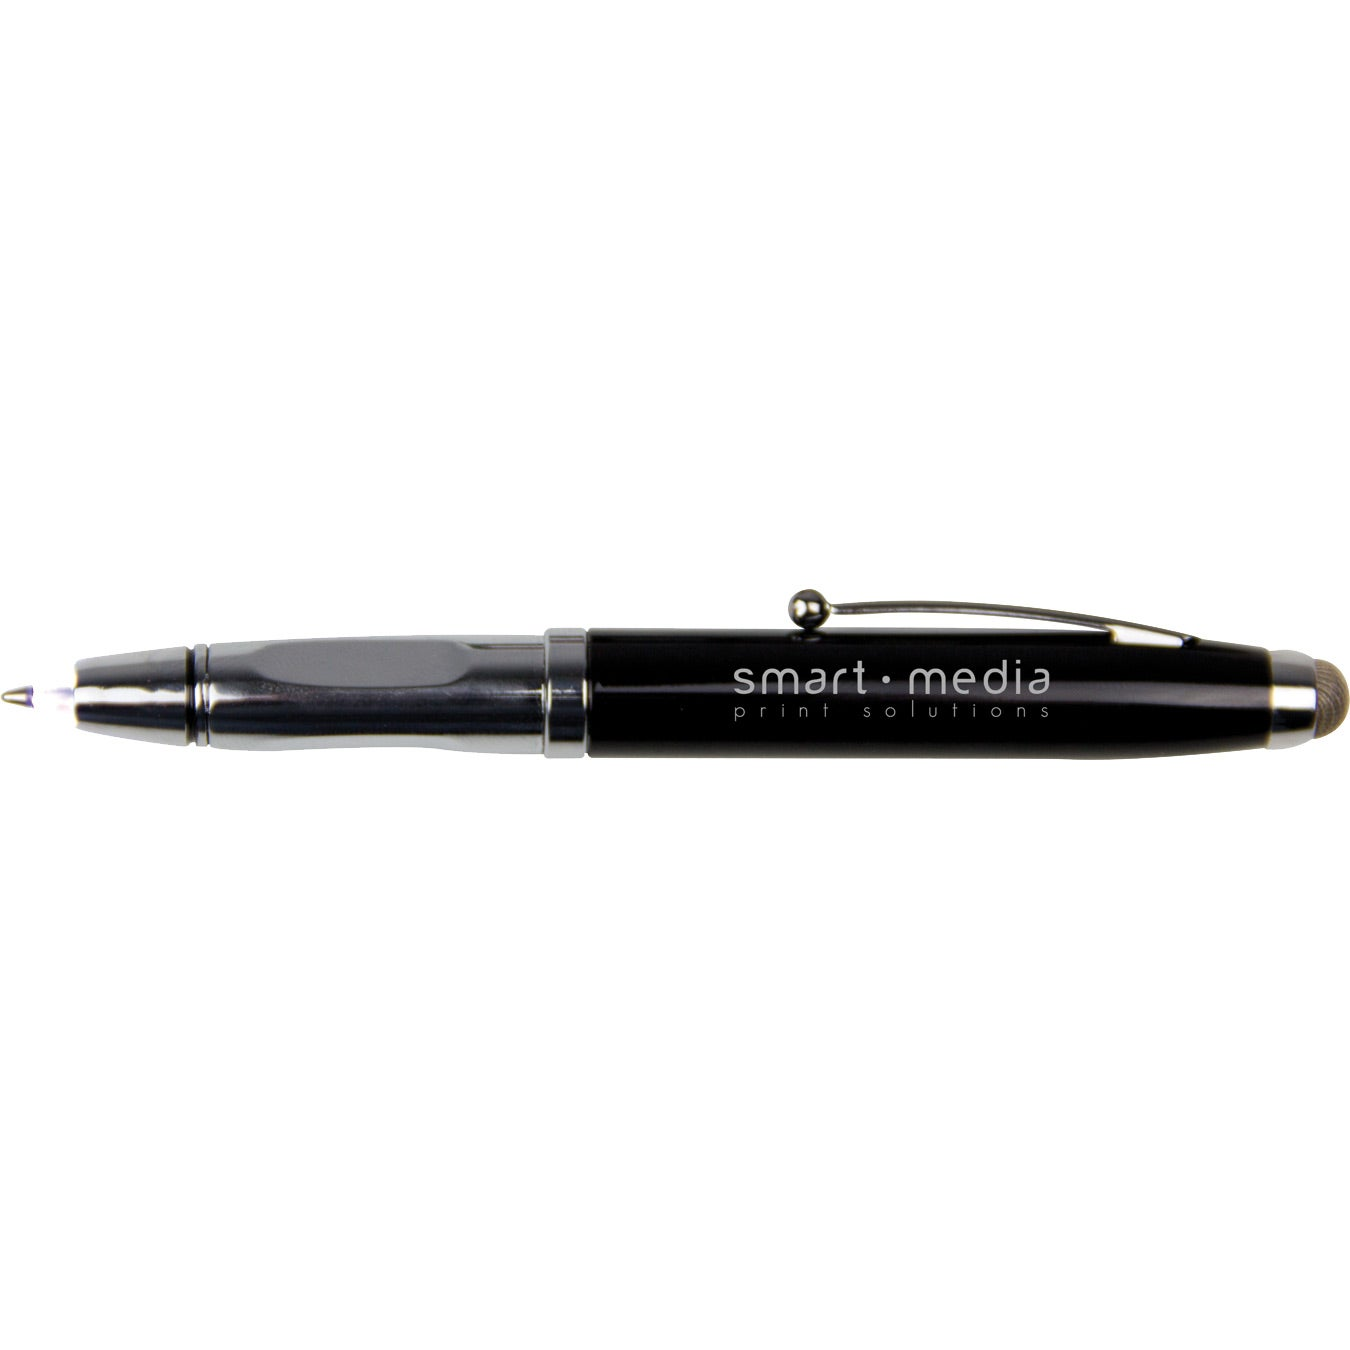 Smart LED Pen with Stylus